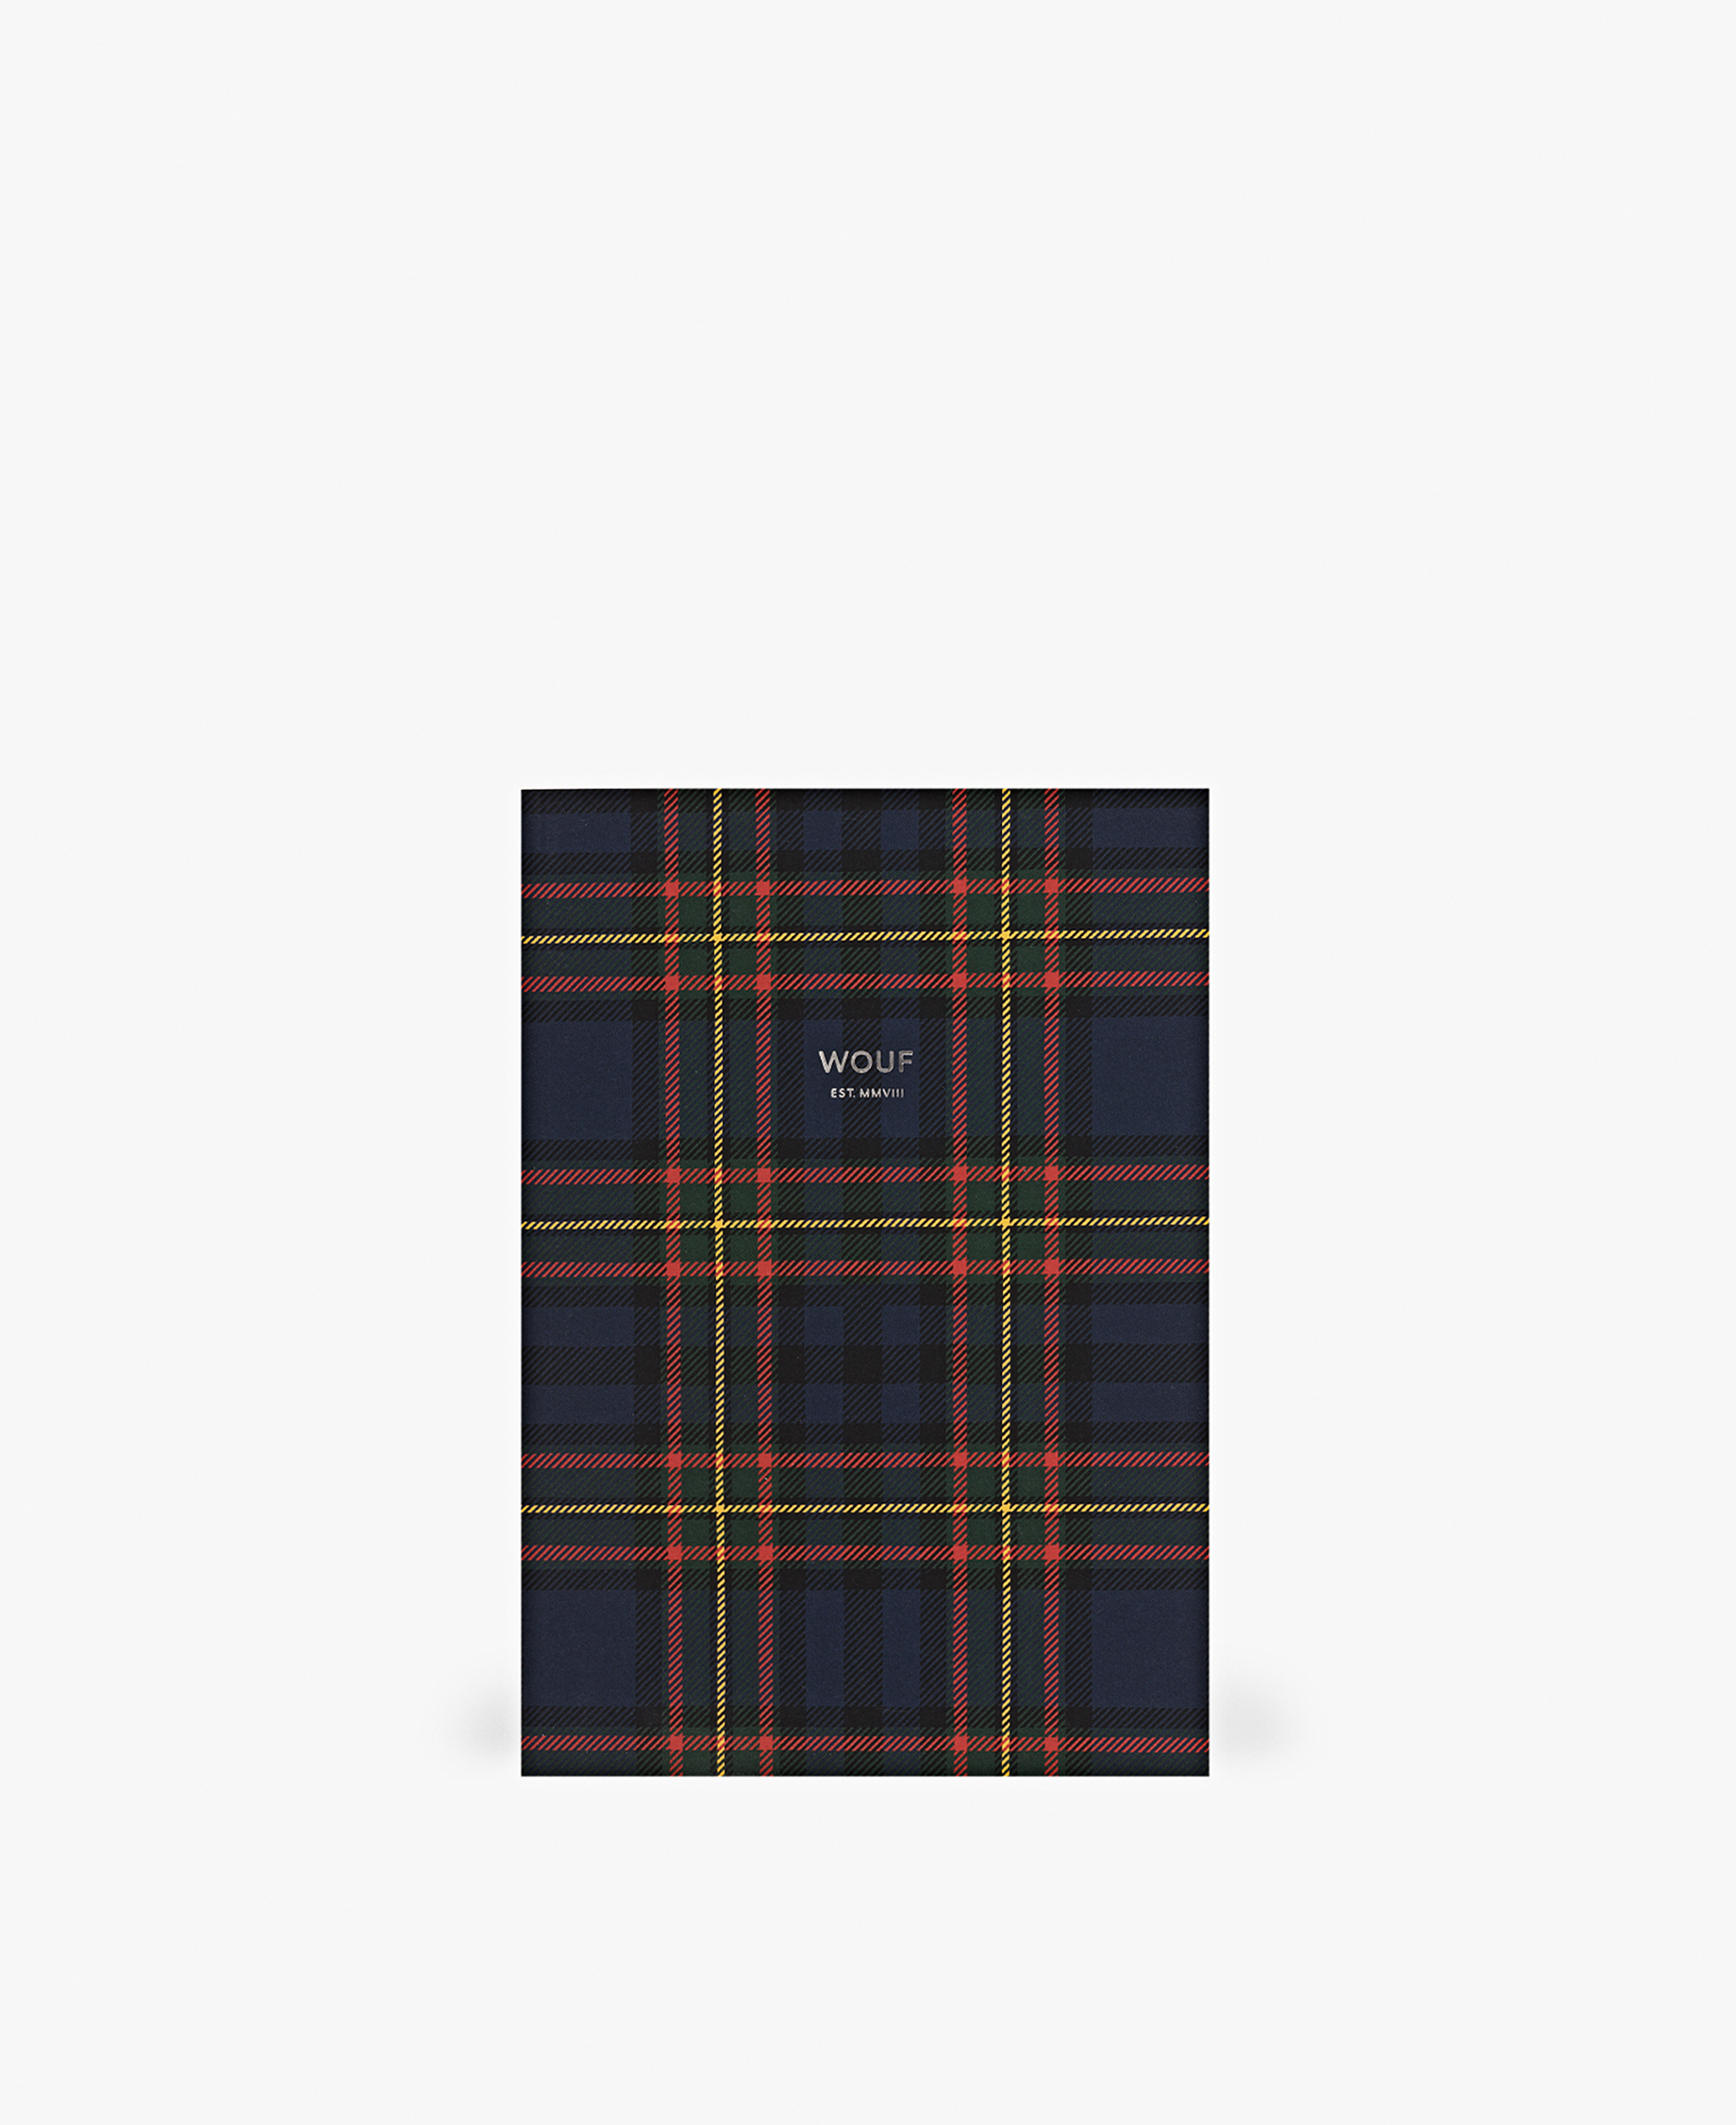 scottish man journal notebook